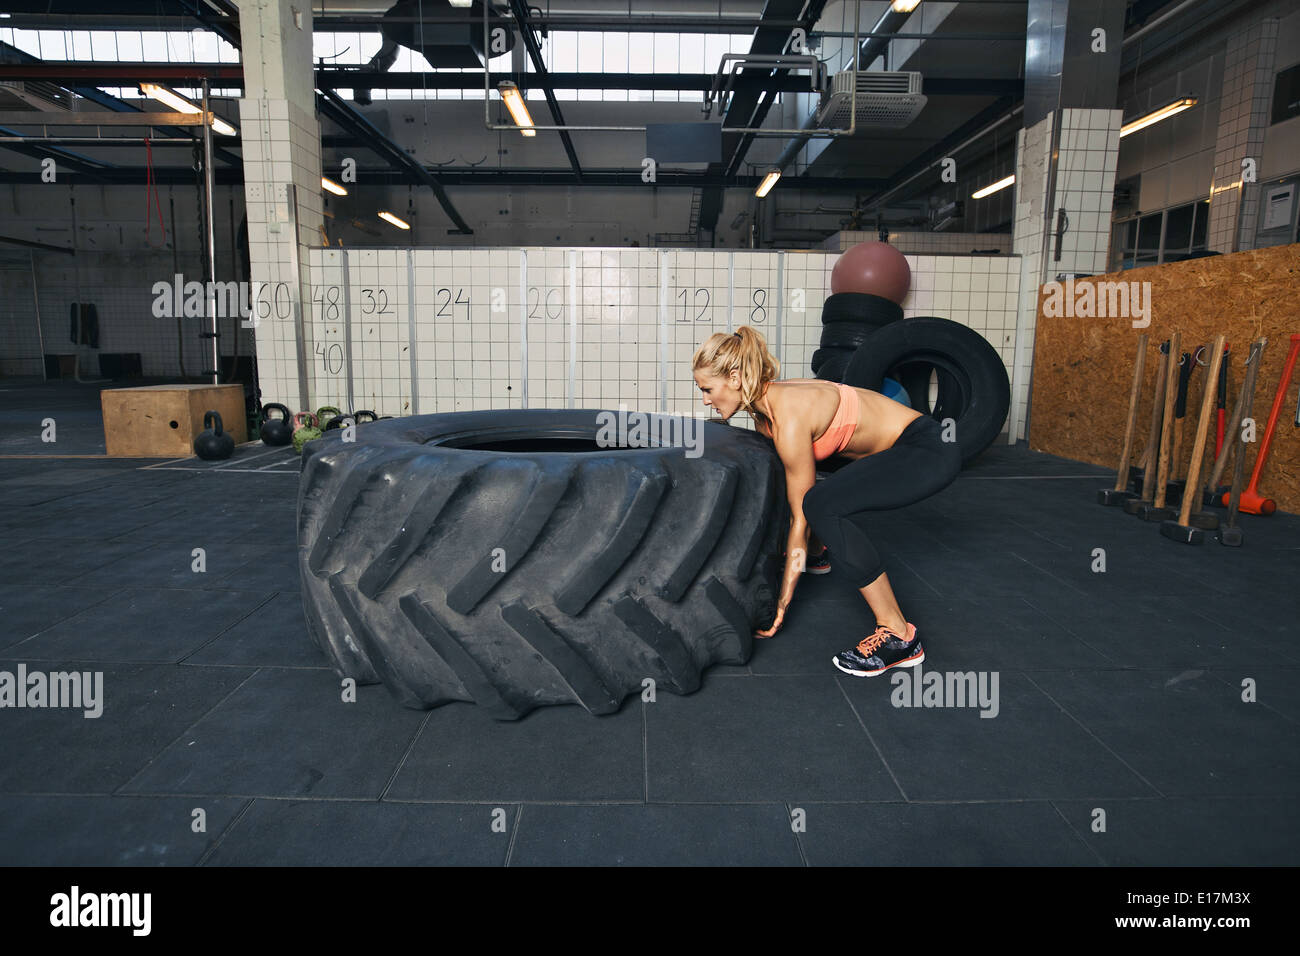 Tough female athlete flipping a huge tire. Young woman doing crossfit exercise at gym. - Stock Image